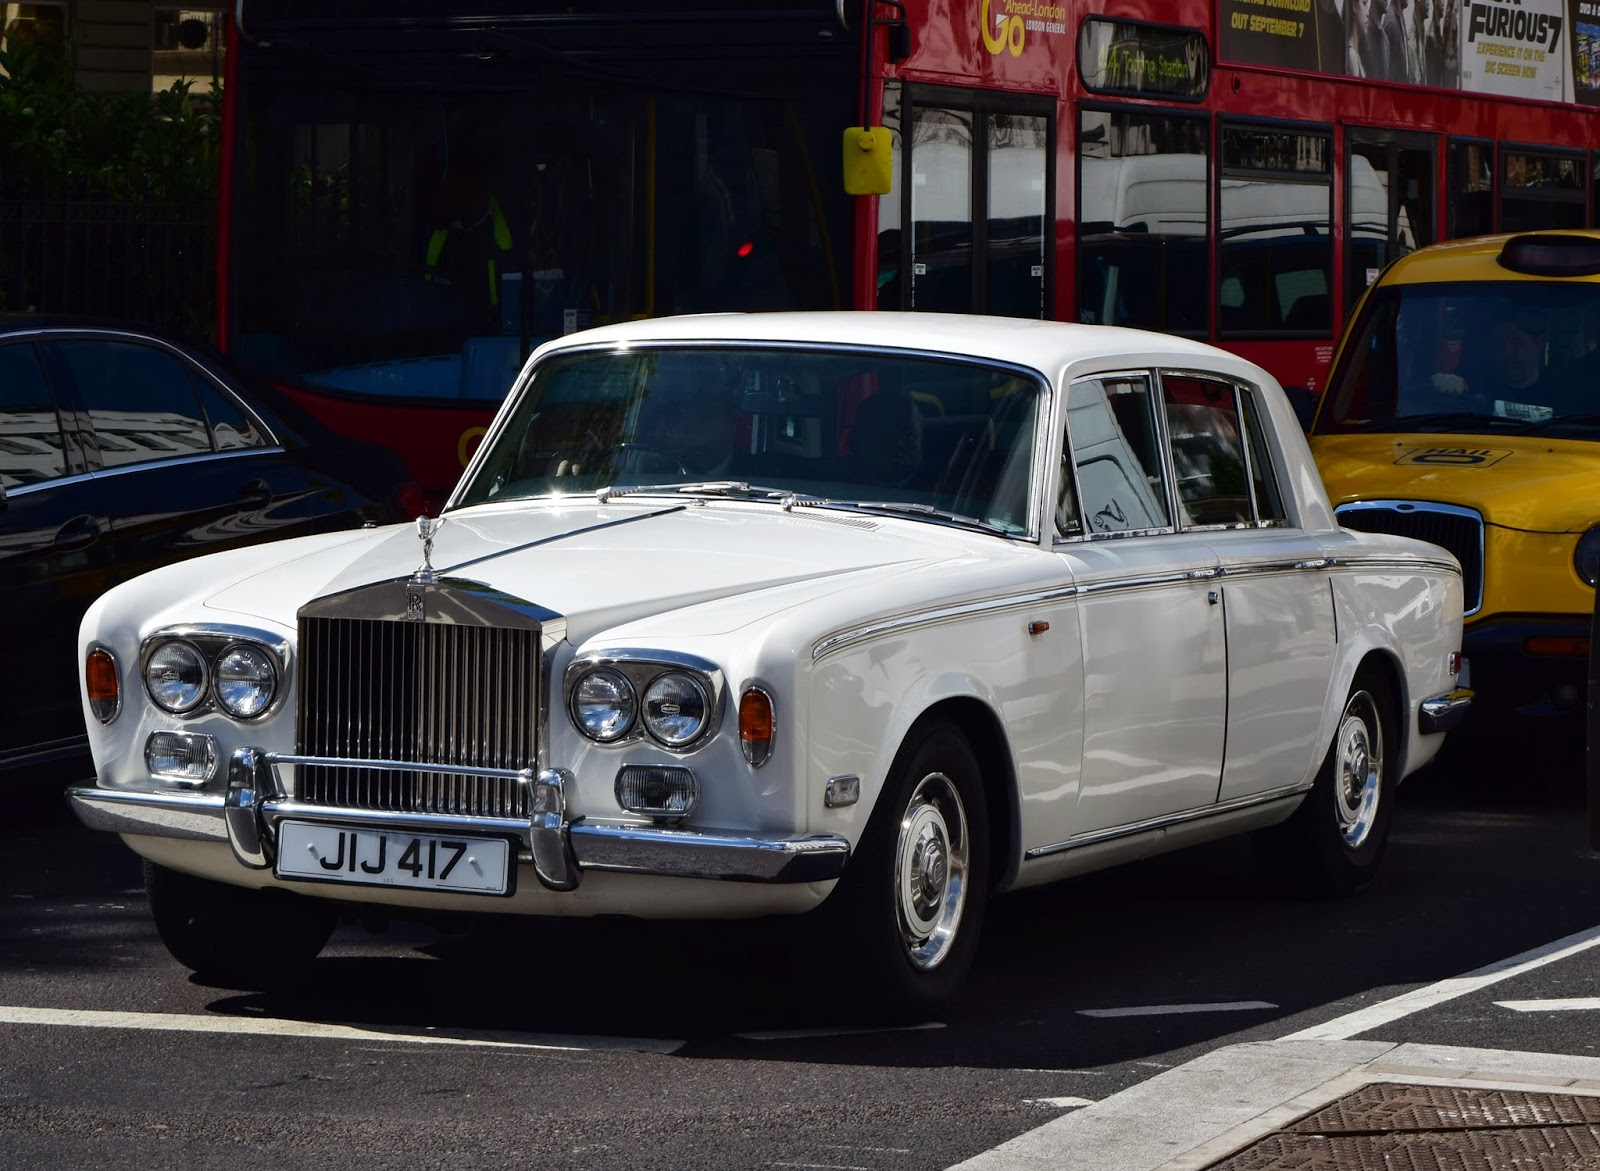 W-wa Jeziorki: More classic cars from London\'s streets